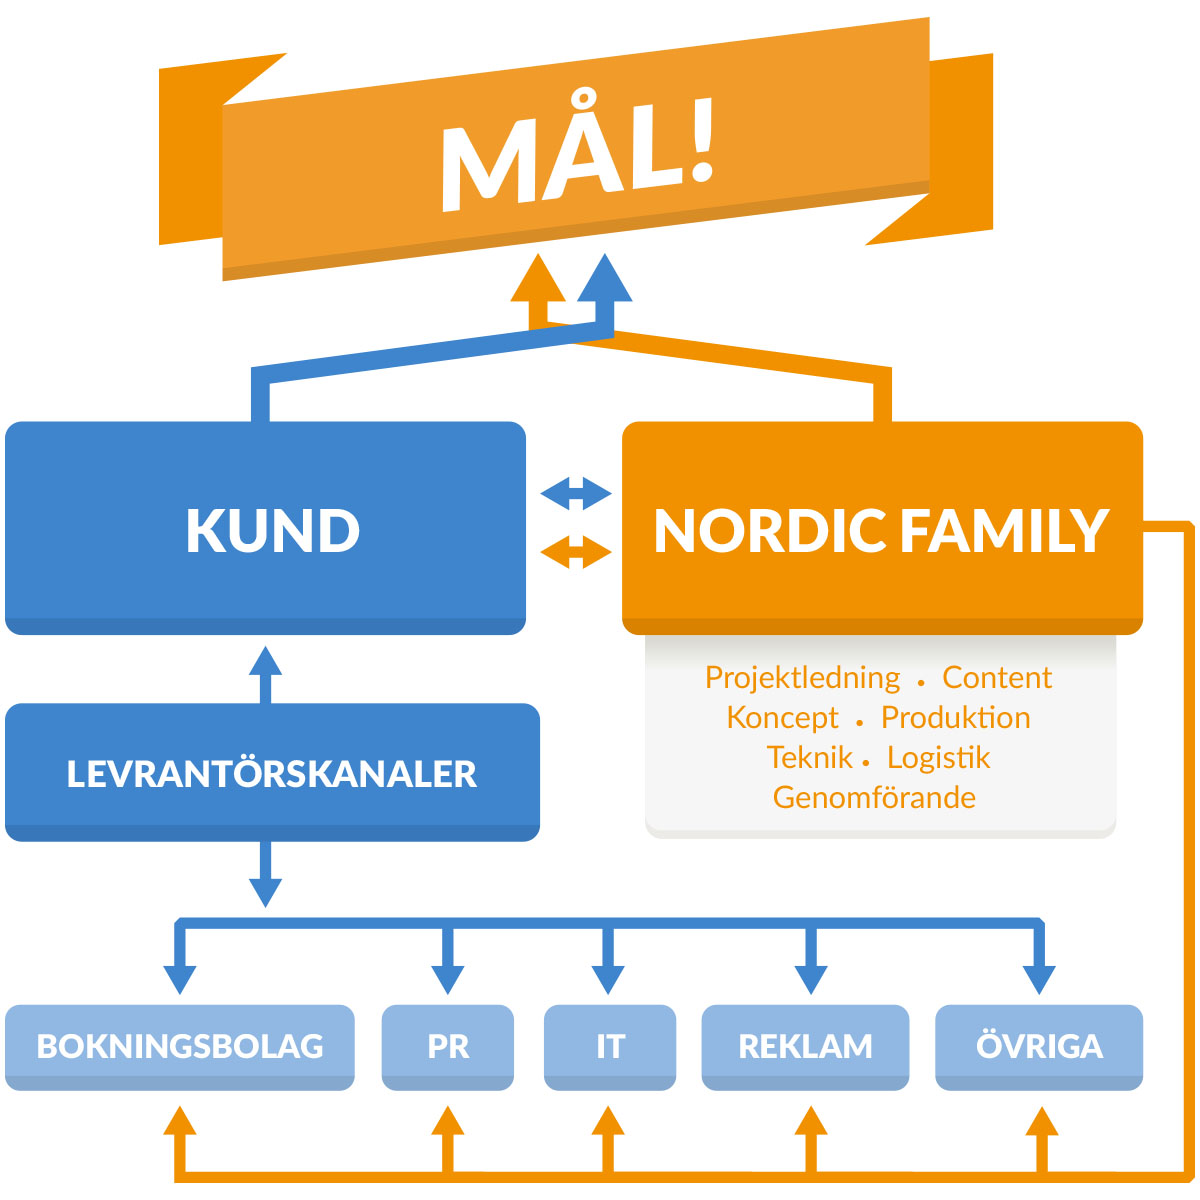 Care-modellen nordicfamily